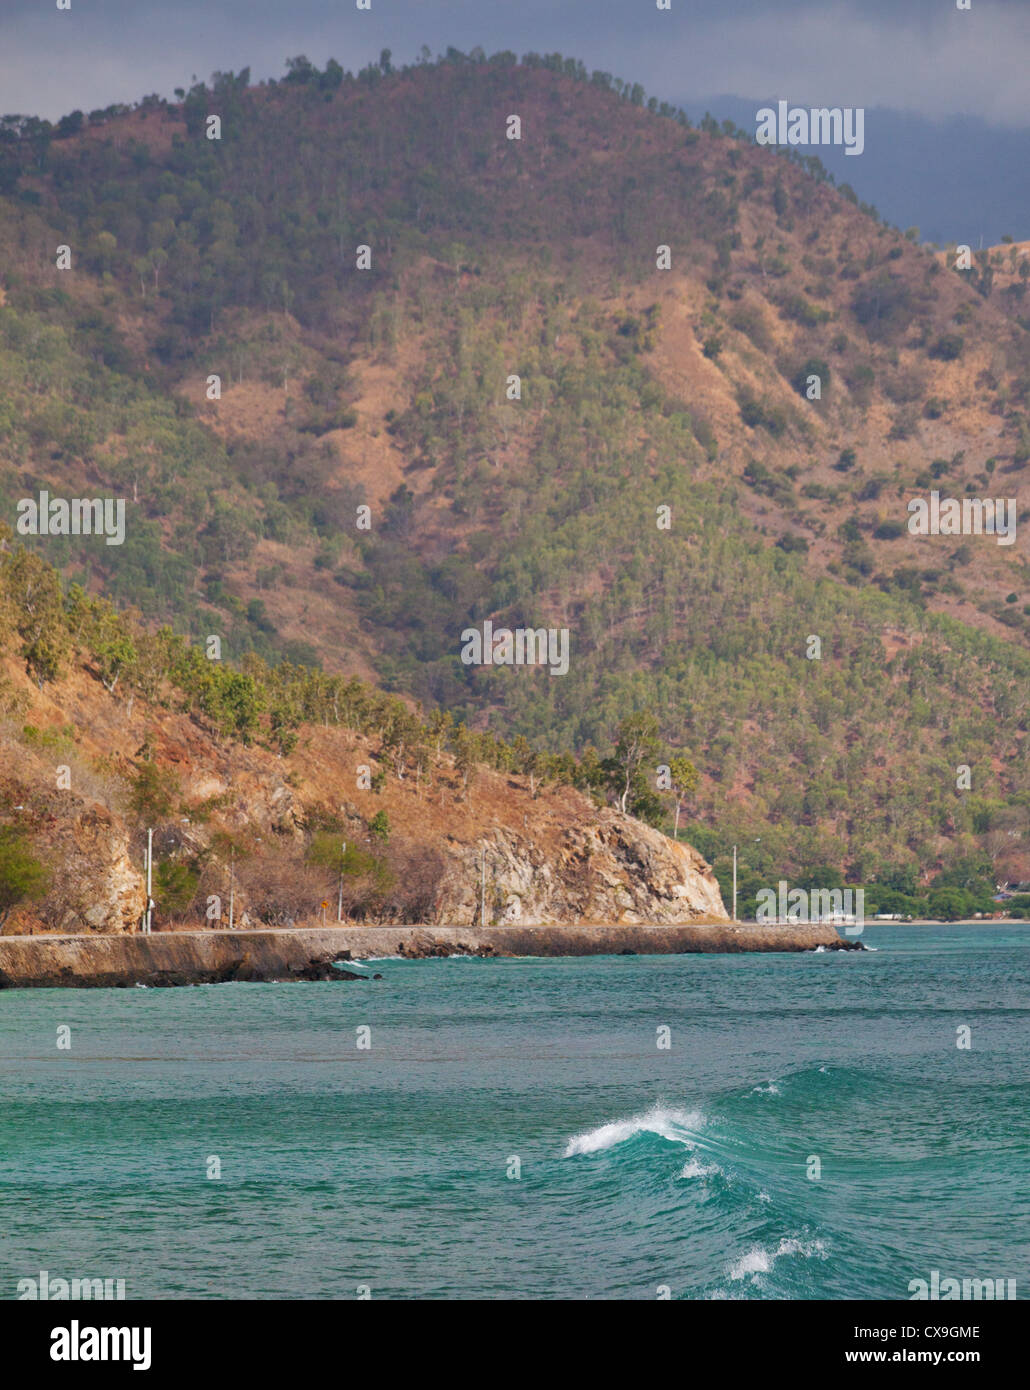 Coast and shore of Dili, East Timor - Stock Image